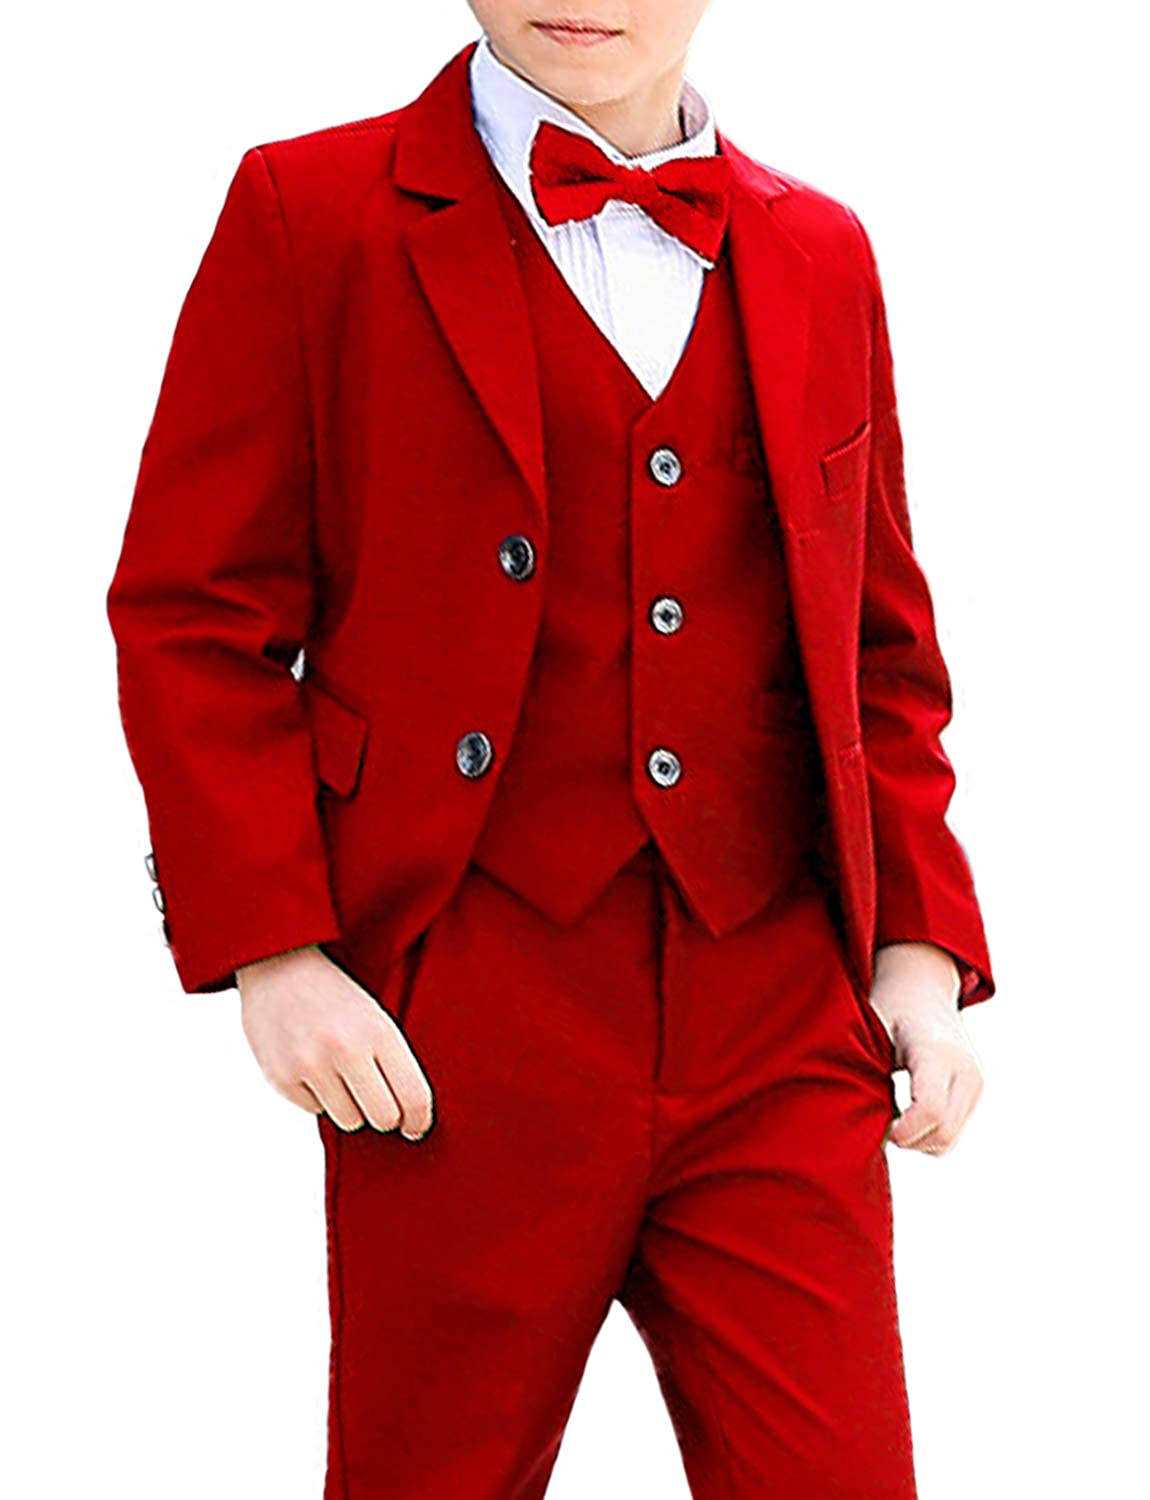 DGMJ Wedding Suits for Boys Slim Fit Fashion 3 Piece Boy Formal Dresswear Set for Birthday HTXZ003